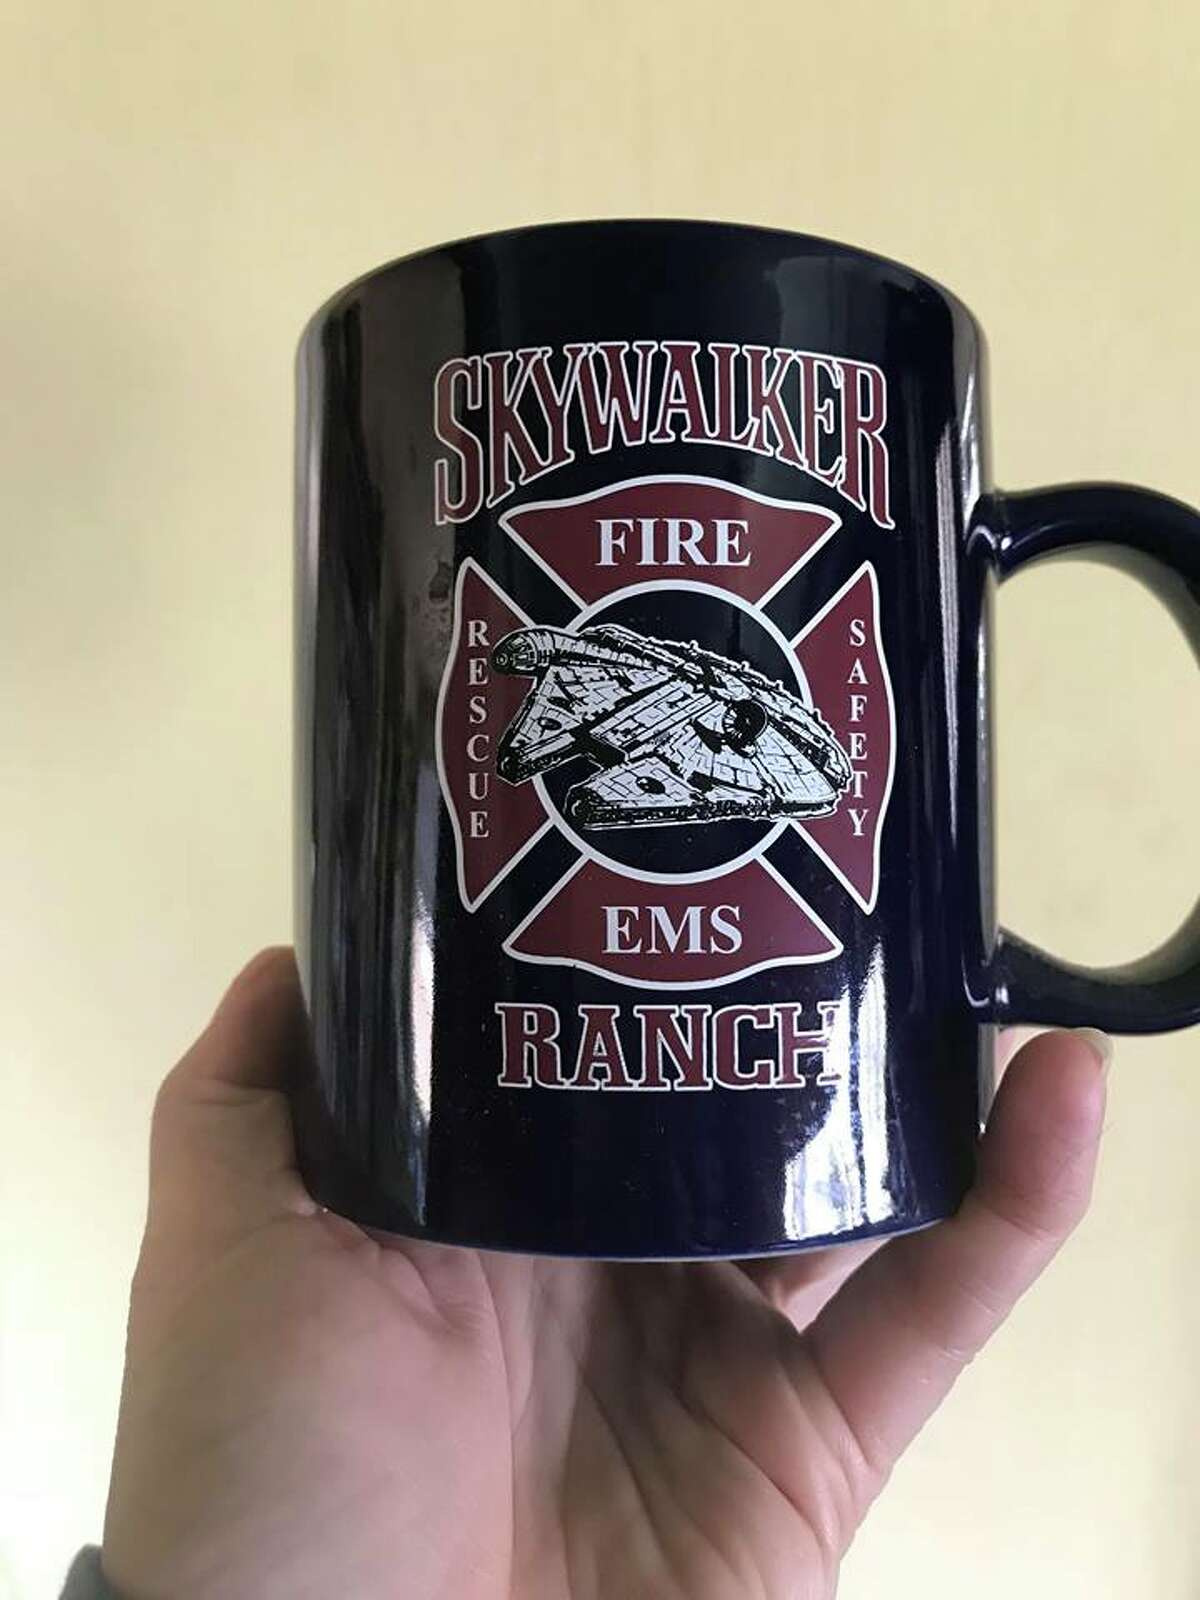 Skywalker Ranch, the movie ranch and workplace of famed filmmaker George Lucas, has its own fire department.